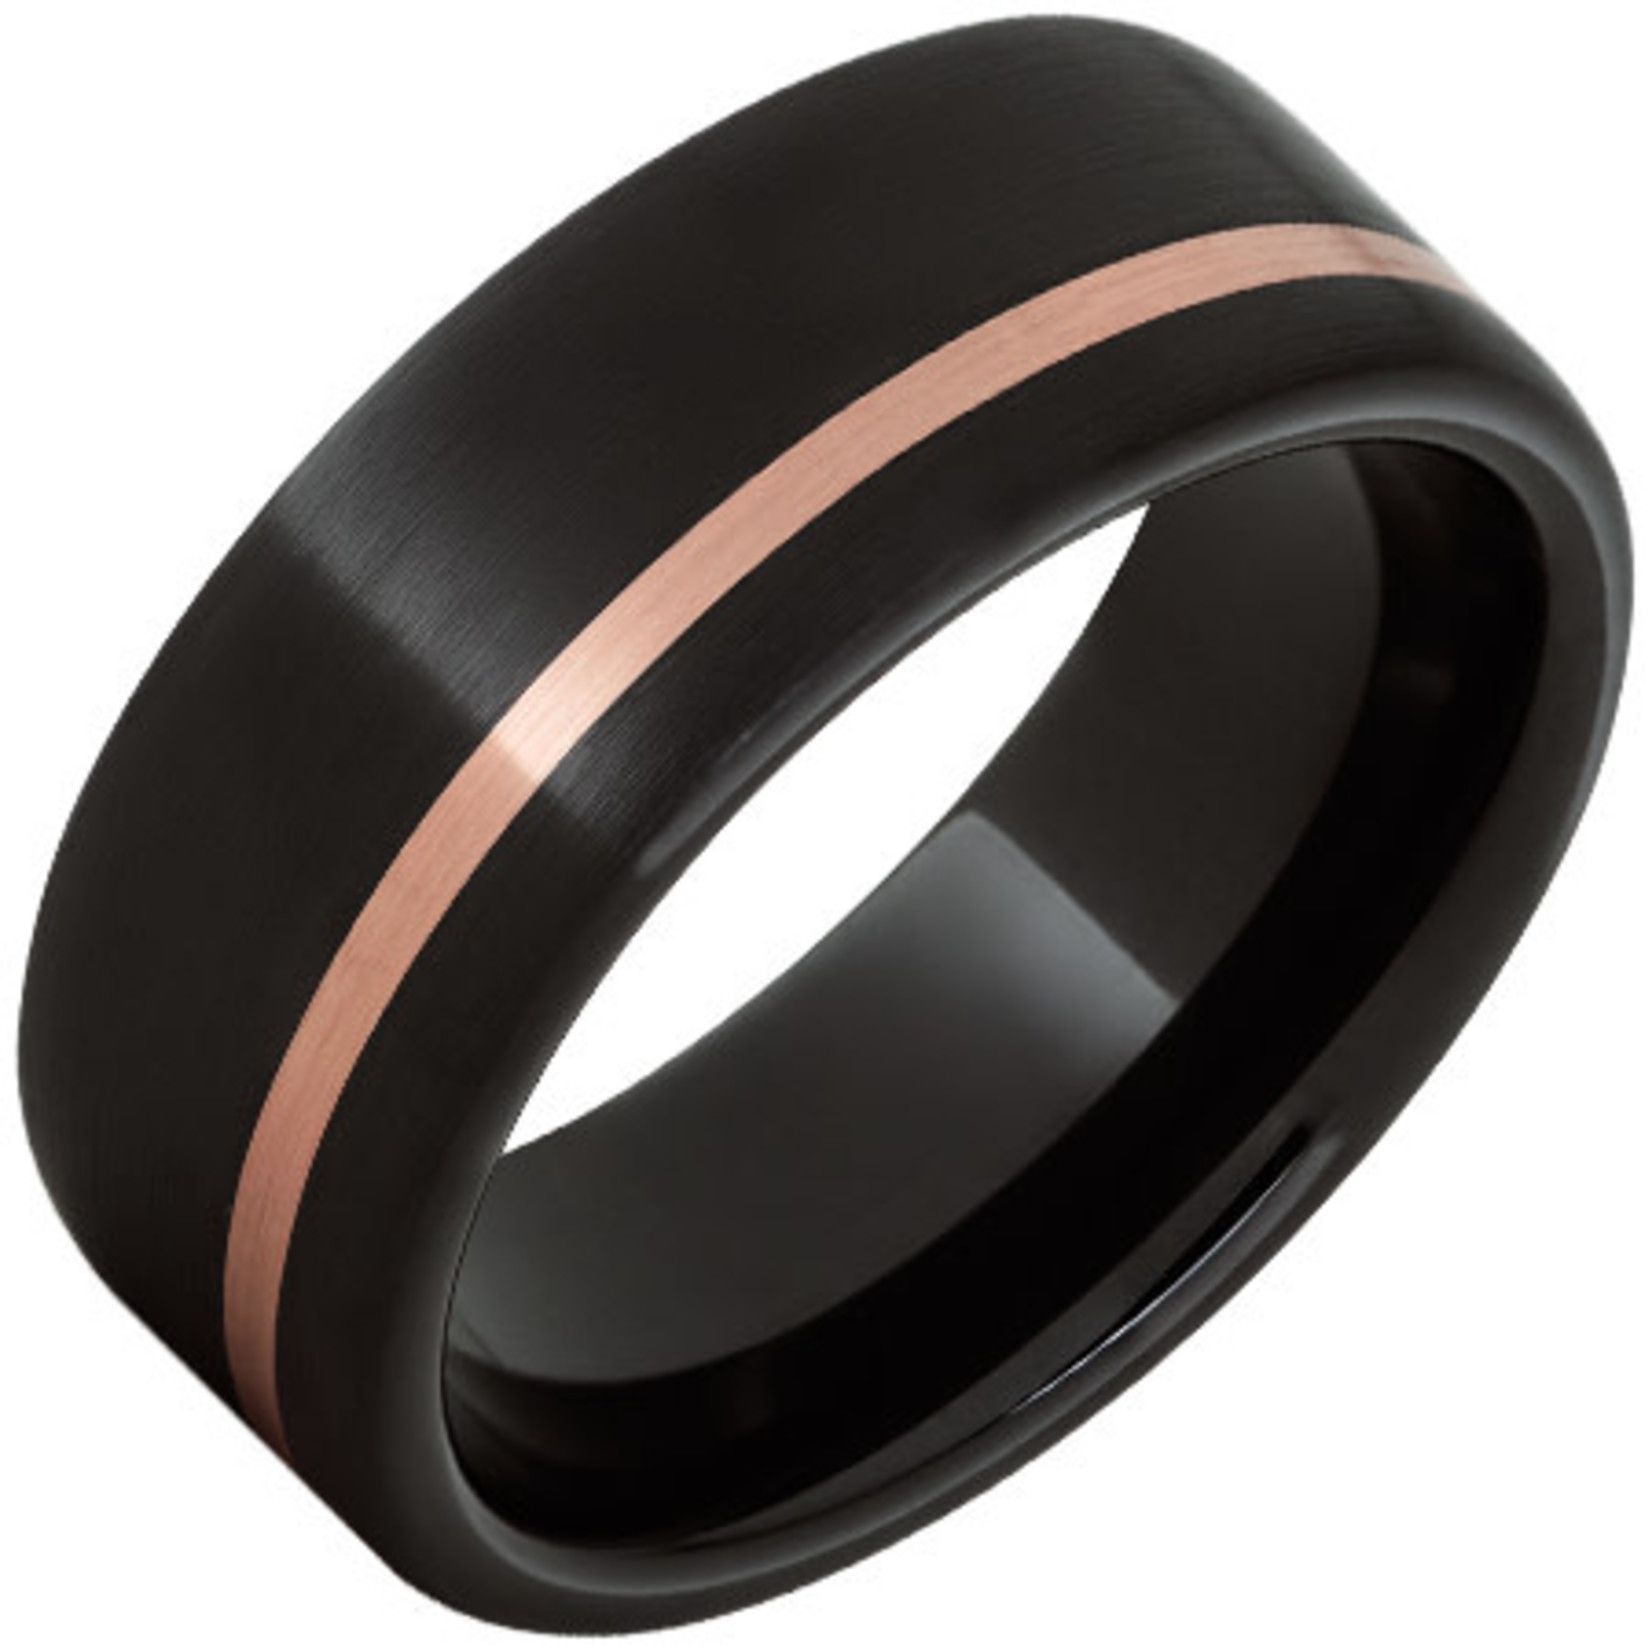 Serinium Wedding Bands Black Ceramic Pipe Cut Band with a 1mm Off-Center 14K Rose Gold Inlay